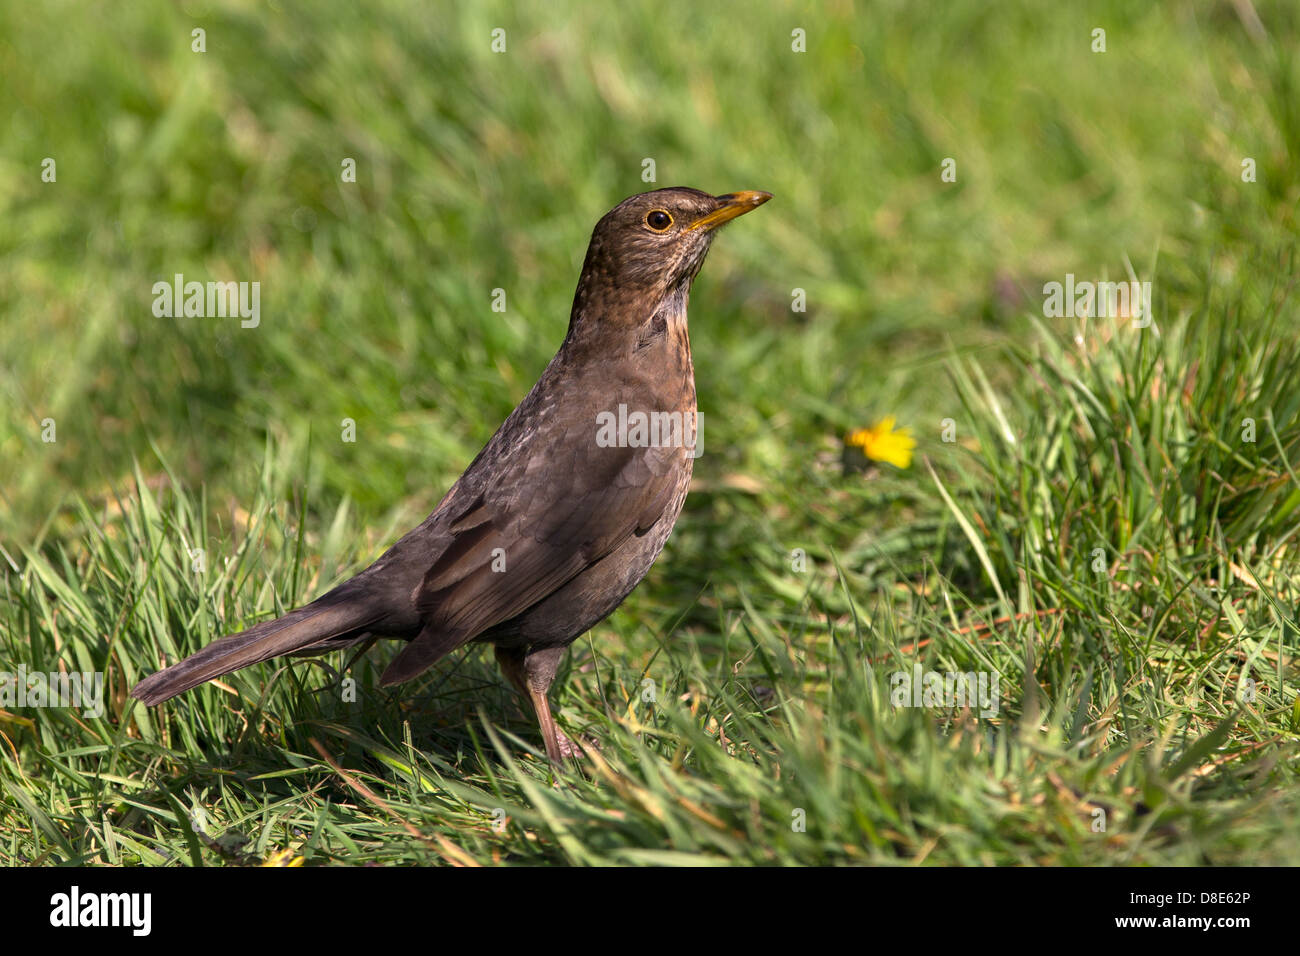 Portrait of a Song Thrush - Stock Image